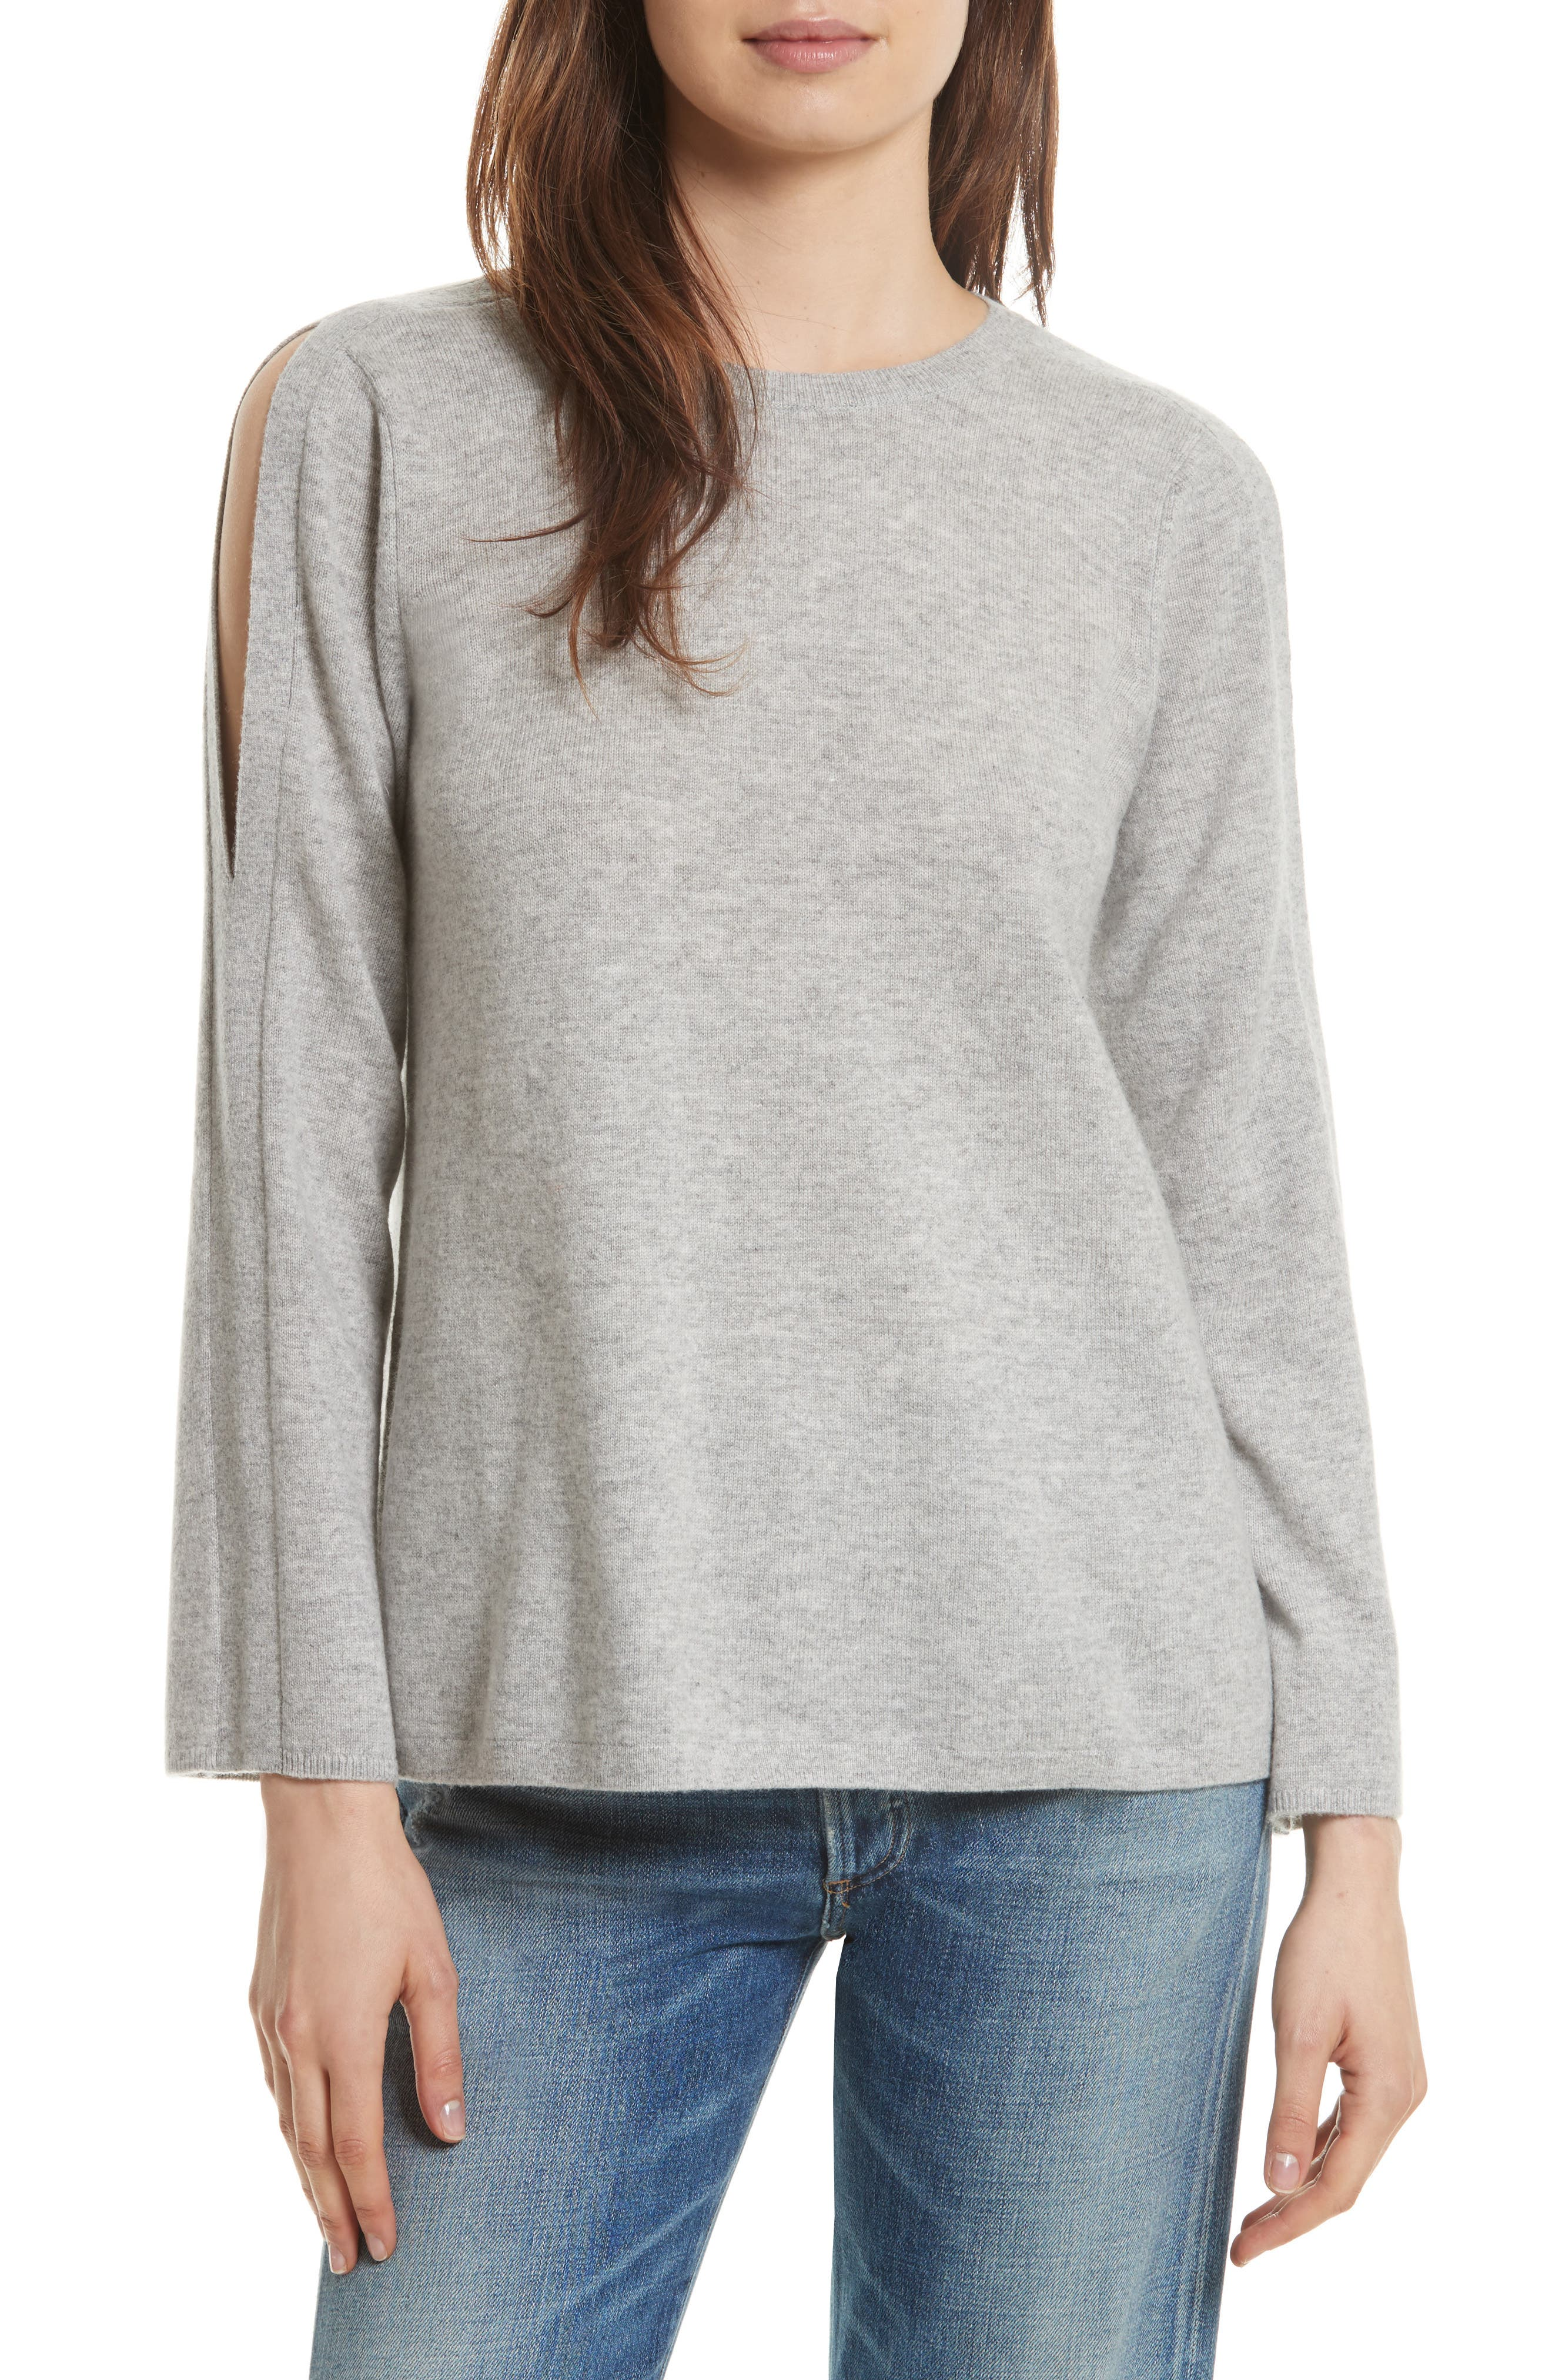 Amalyn Cold Shoulder Wool & Cashmere Sweater,                             Main thumbnail 1, color,                             Ash Heather Grey